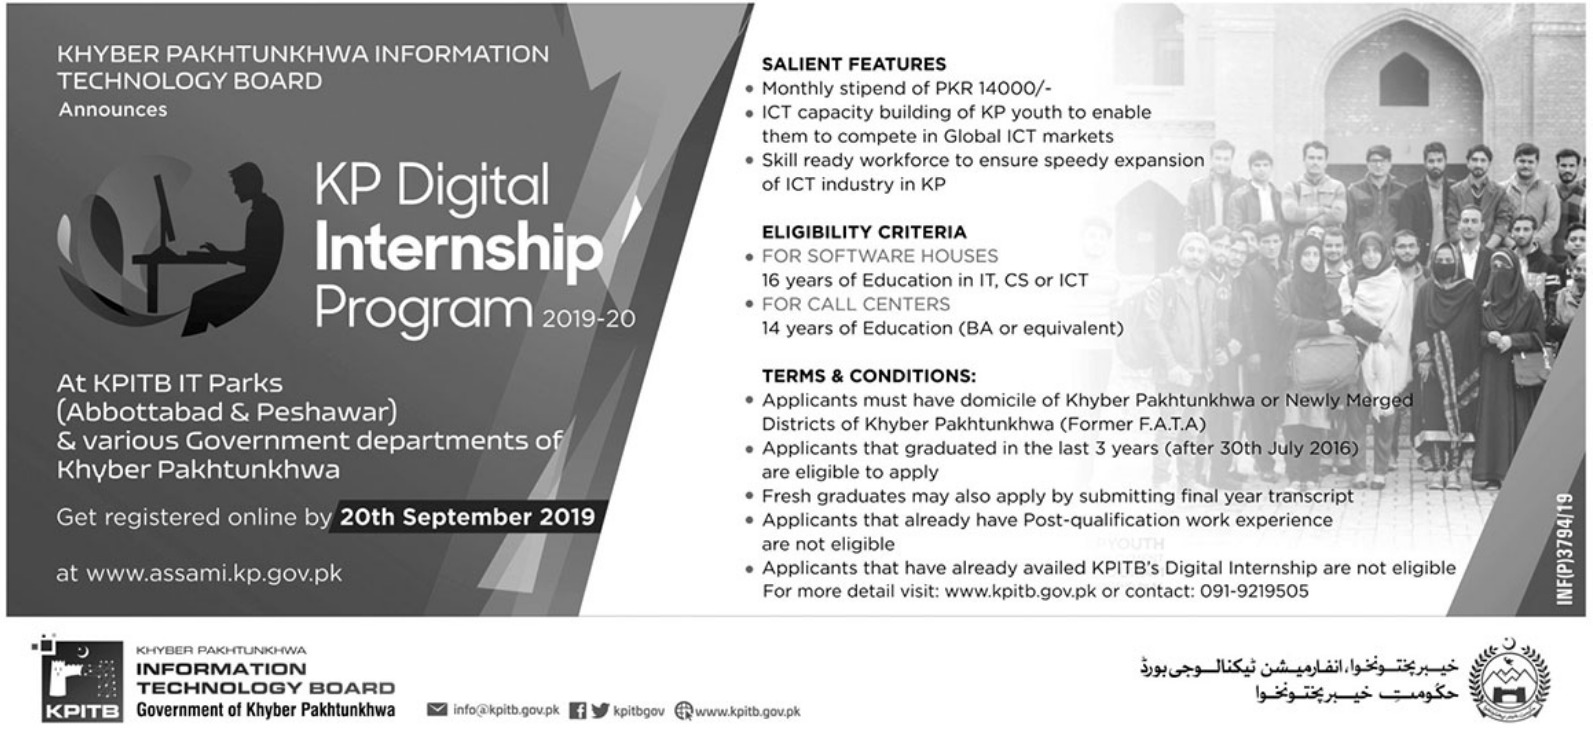 KPITB Internship Program 2019-20 Khyber Pakhtunkhwa Information Technology Board